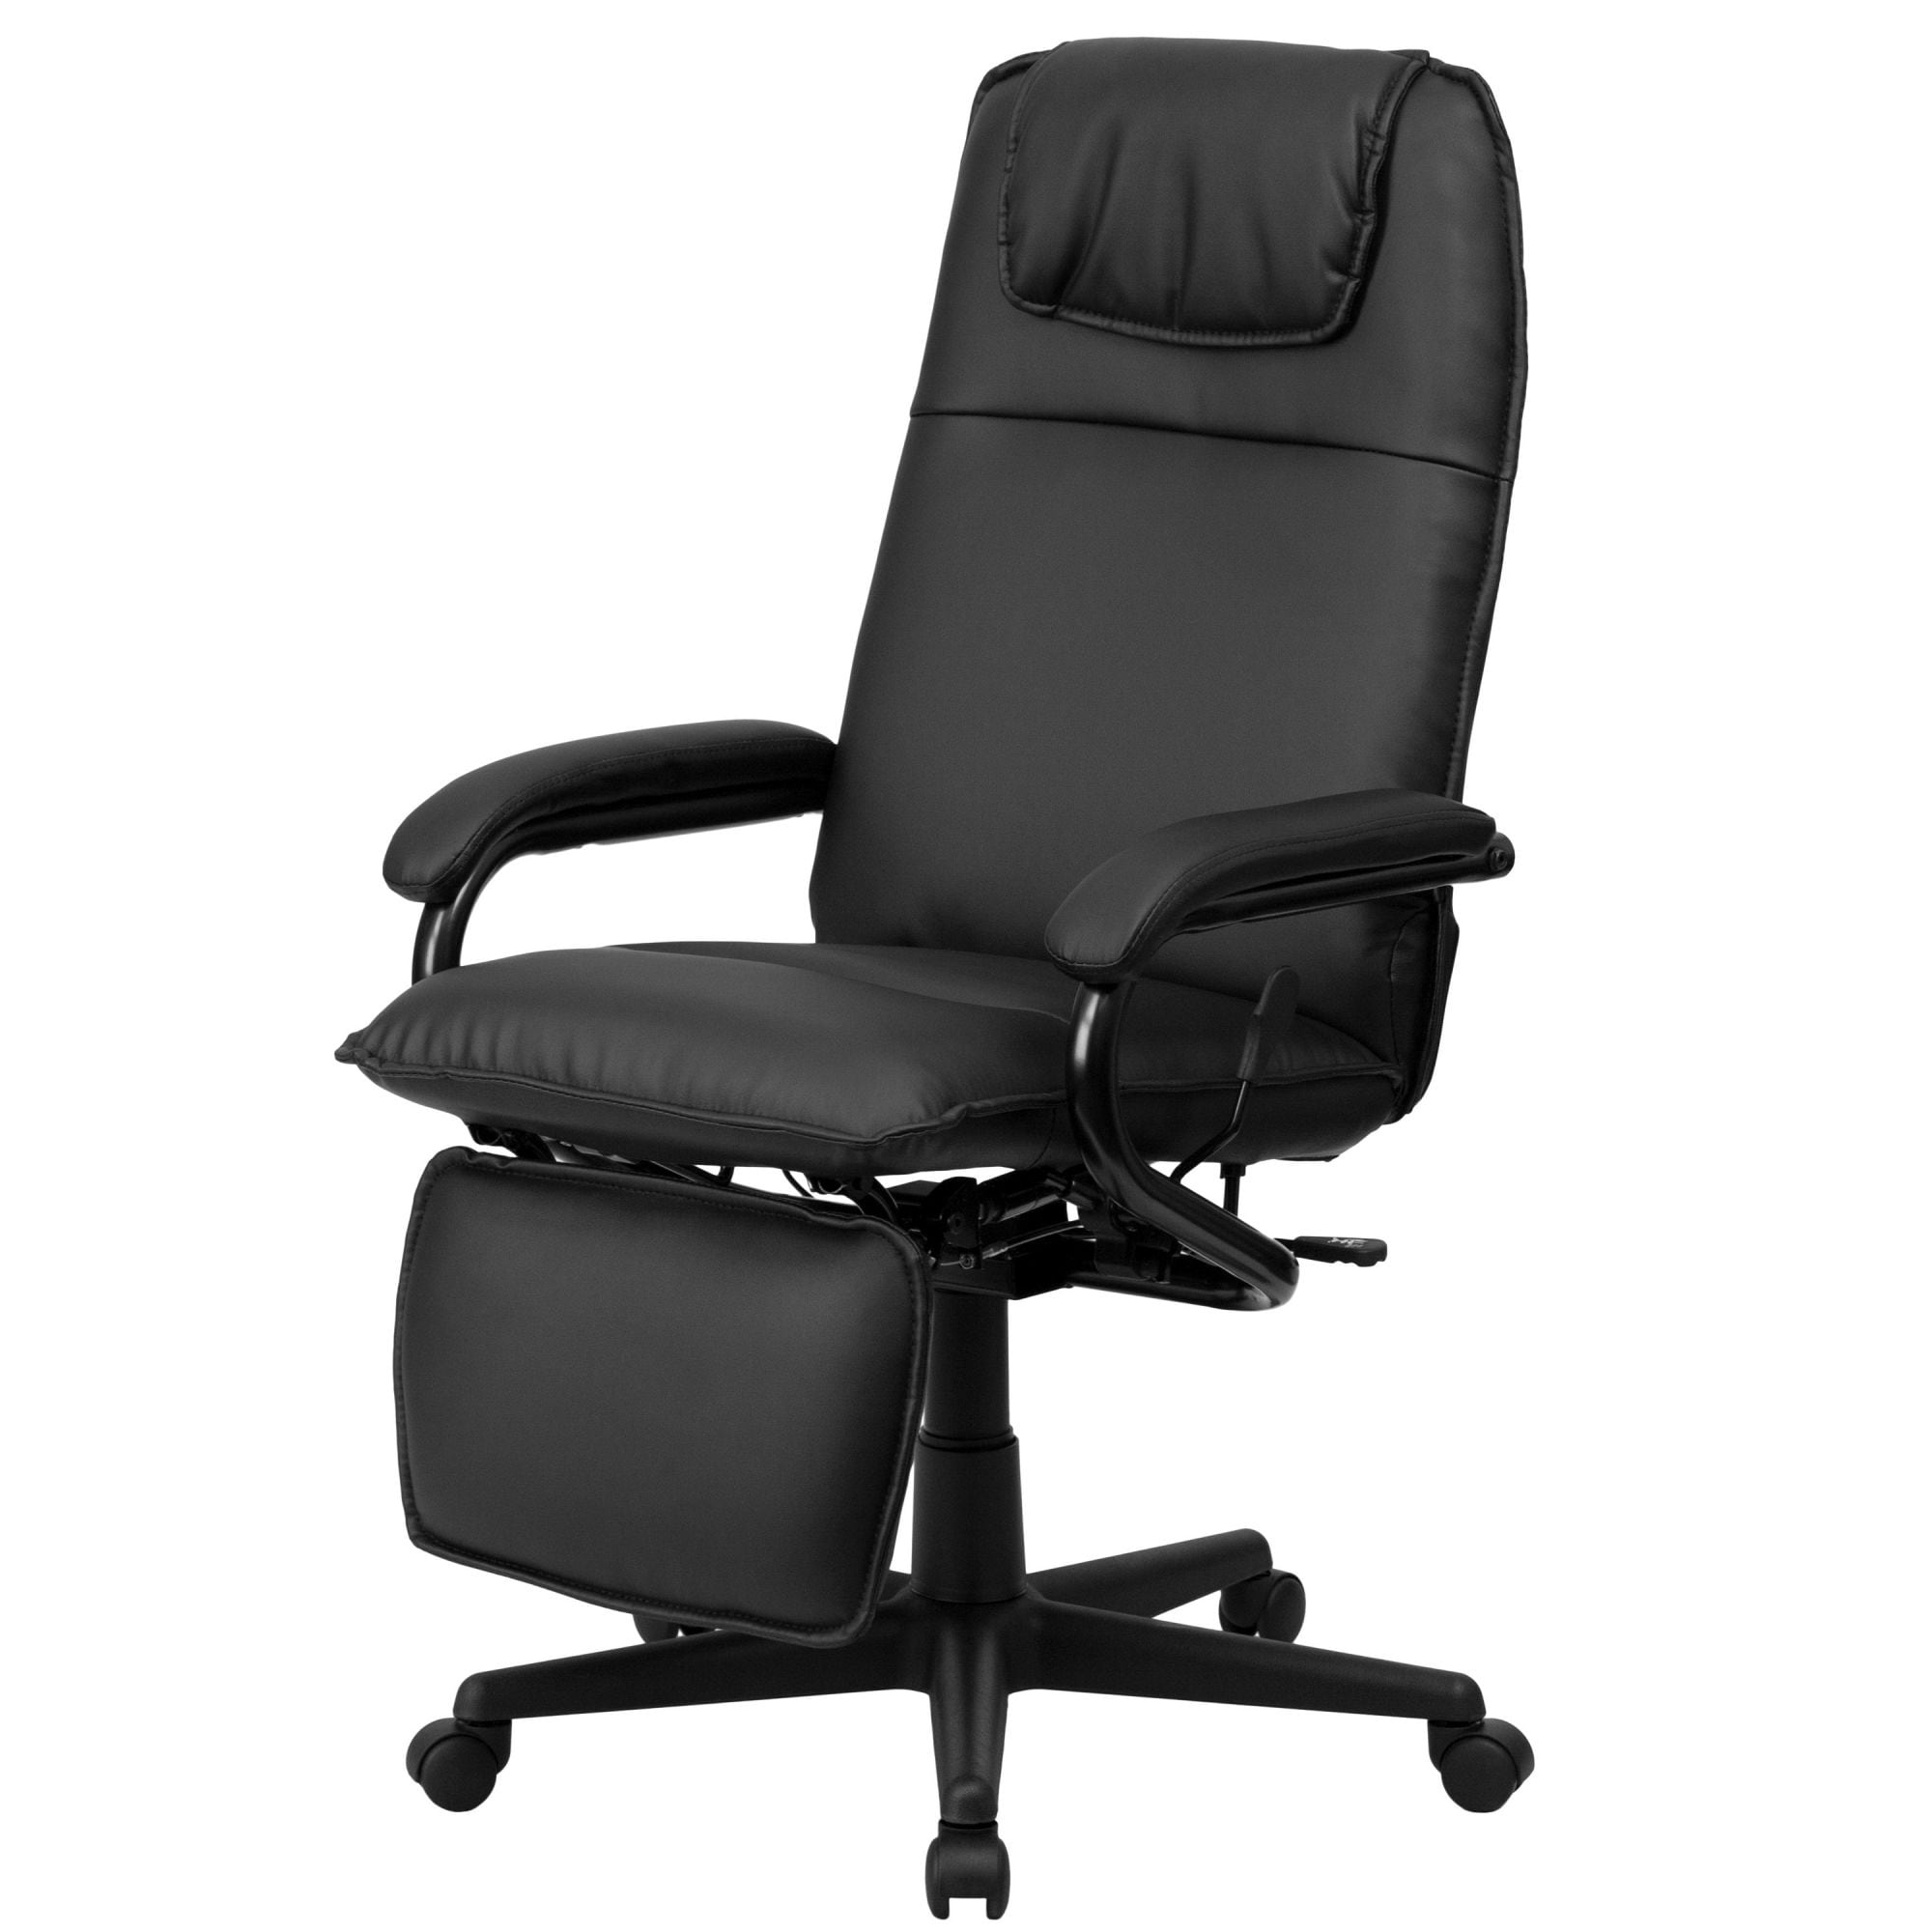 Chair Leather Reclining Swivel Delacora Ff Bt 70172 24